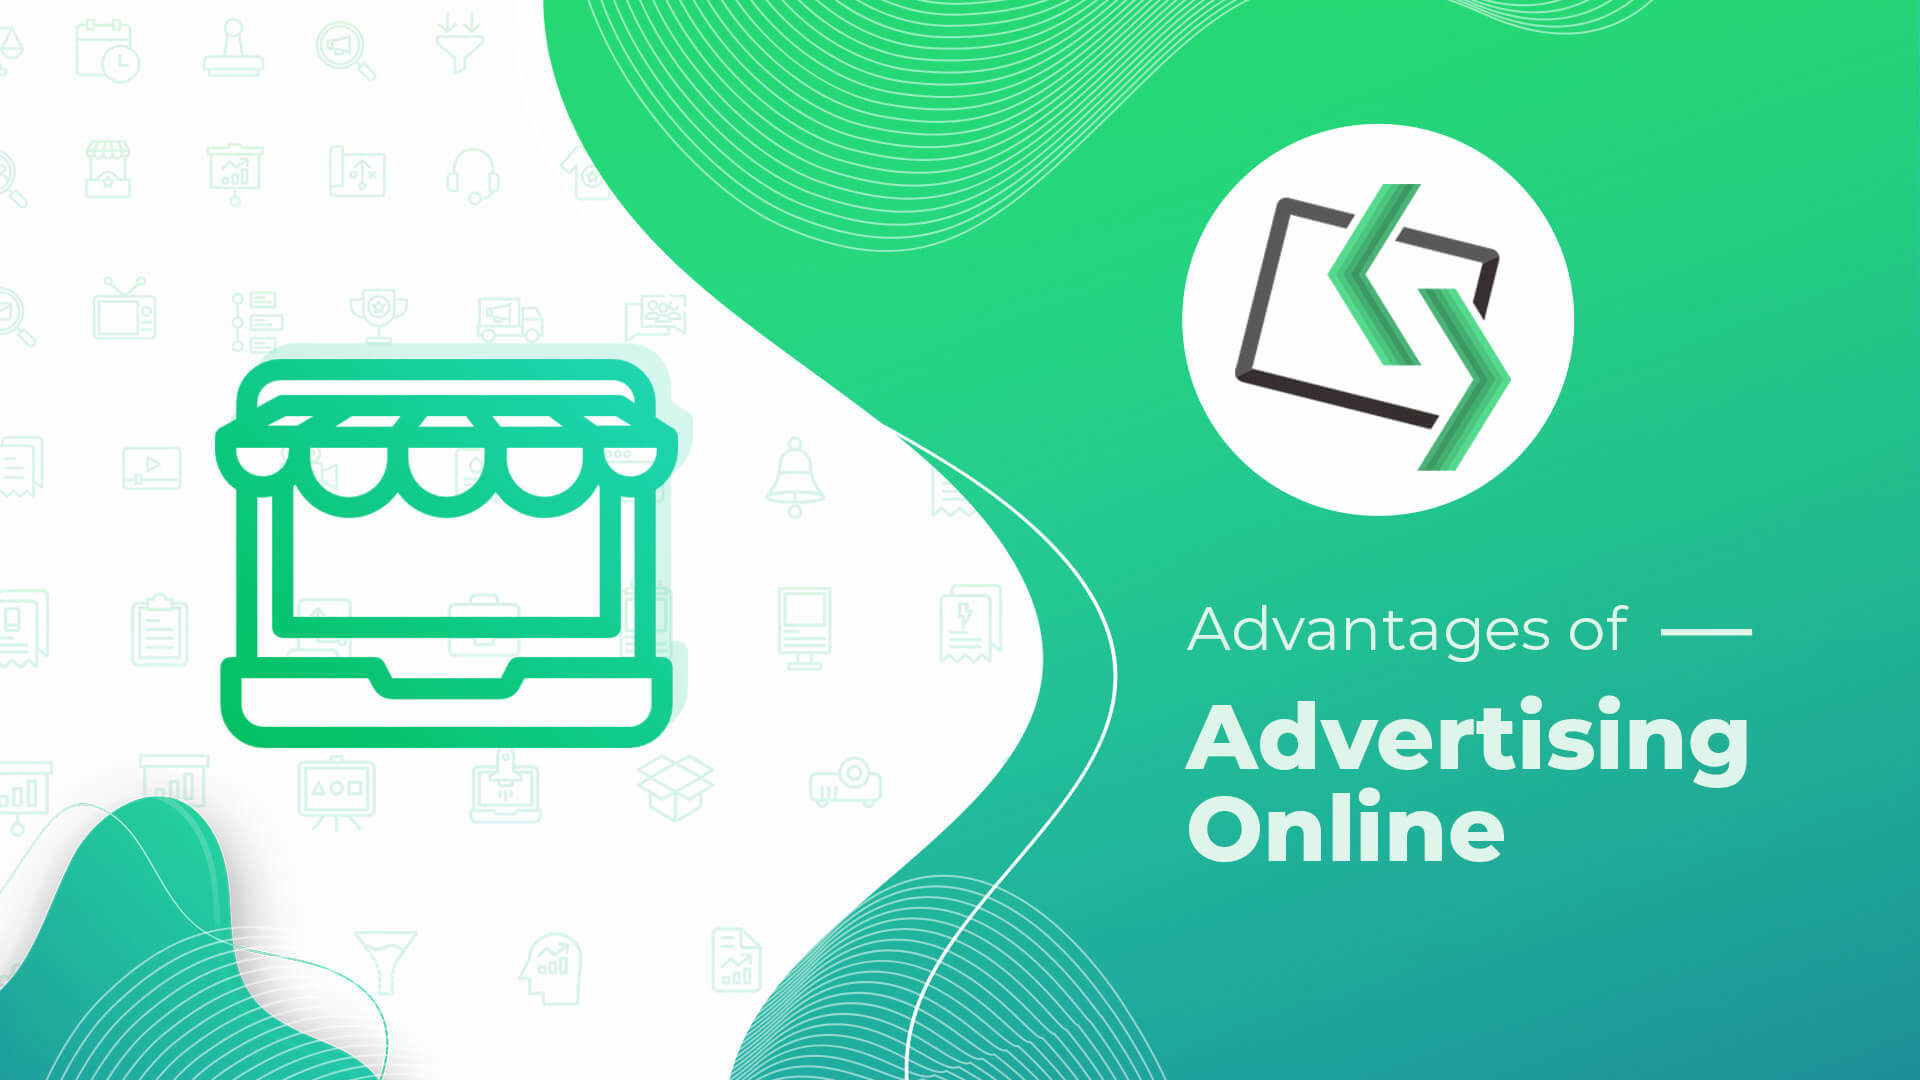 Advantages of Advertising Online